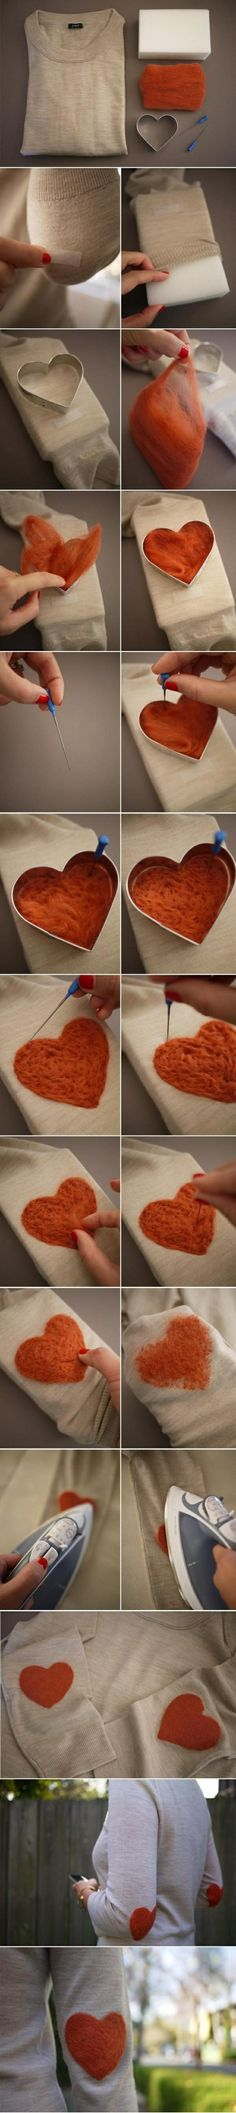 great idea :felted elbow patches and tons of other DIY projects Diy Projects To Try, Craft Projects, Sewing Projects, Cute Crafts, Diy And Crafts, Arts And Crafts, Felt Crafts, Decor Crafts, Paper Crafts